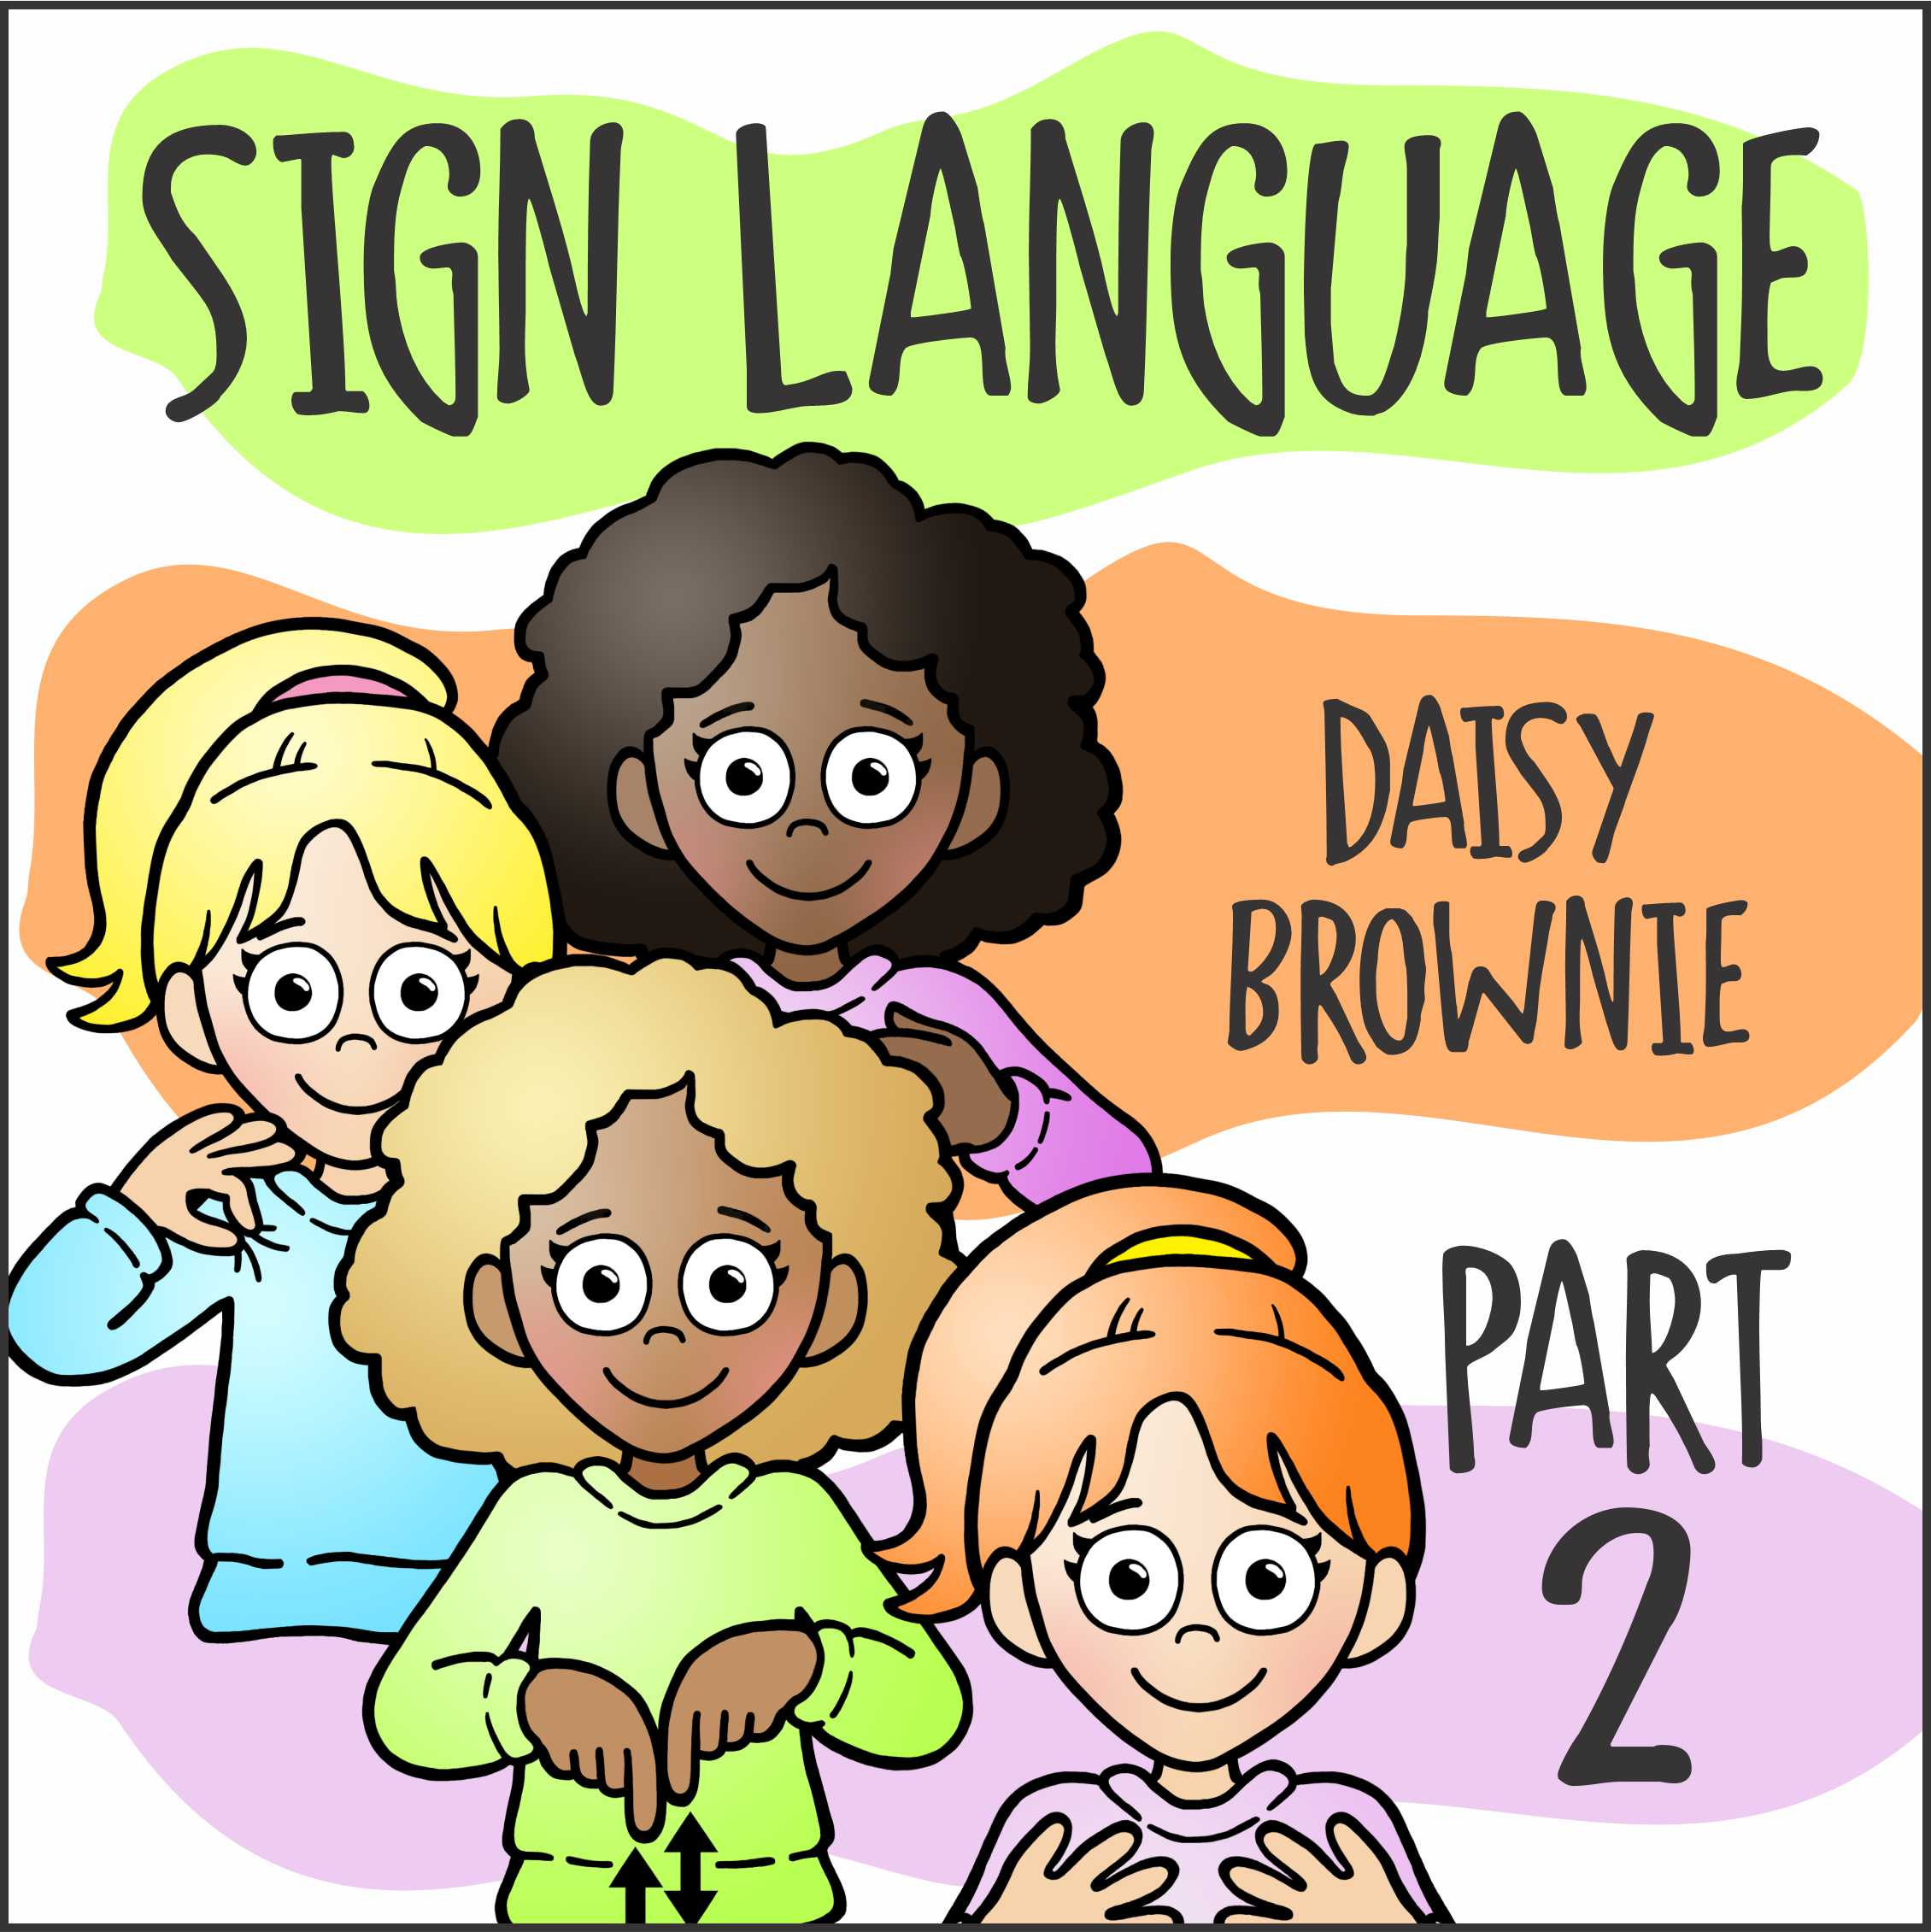 Girl Scout Sign Language Virtual Workshop for Daisies and Brownies Part 2